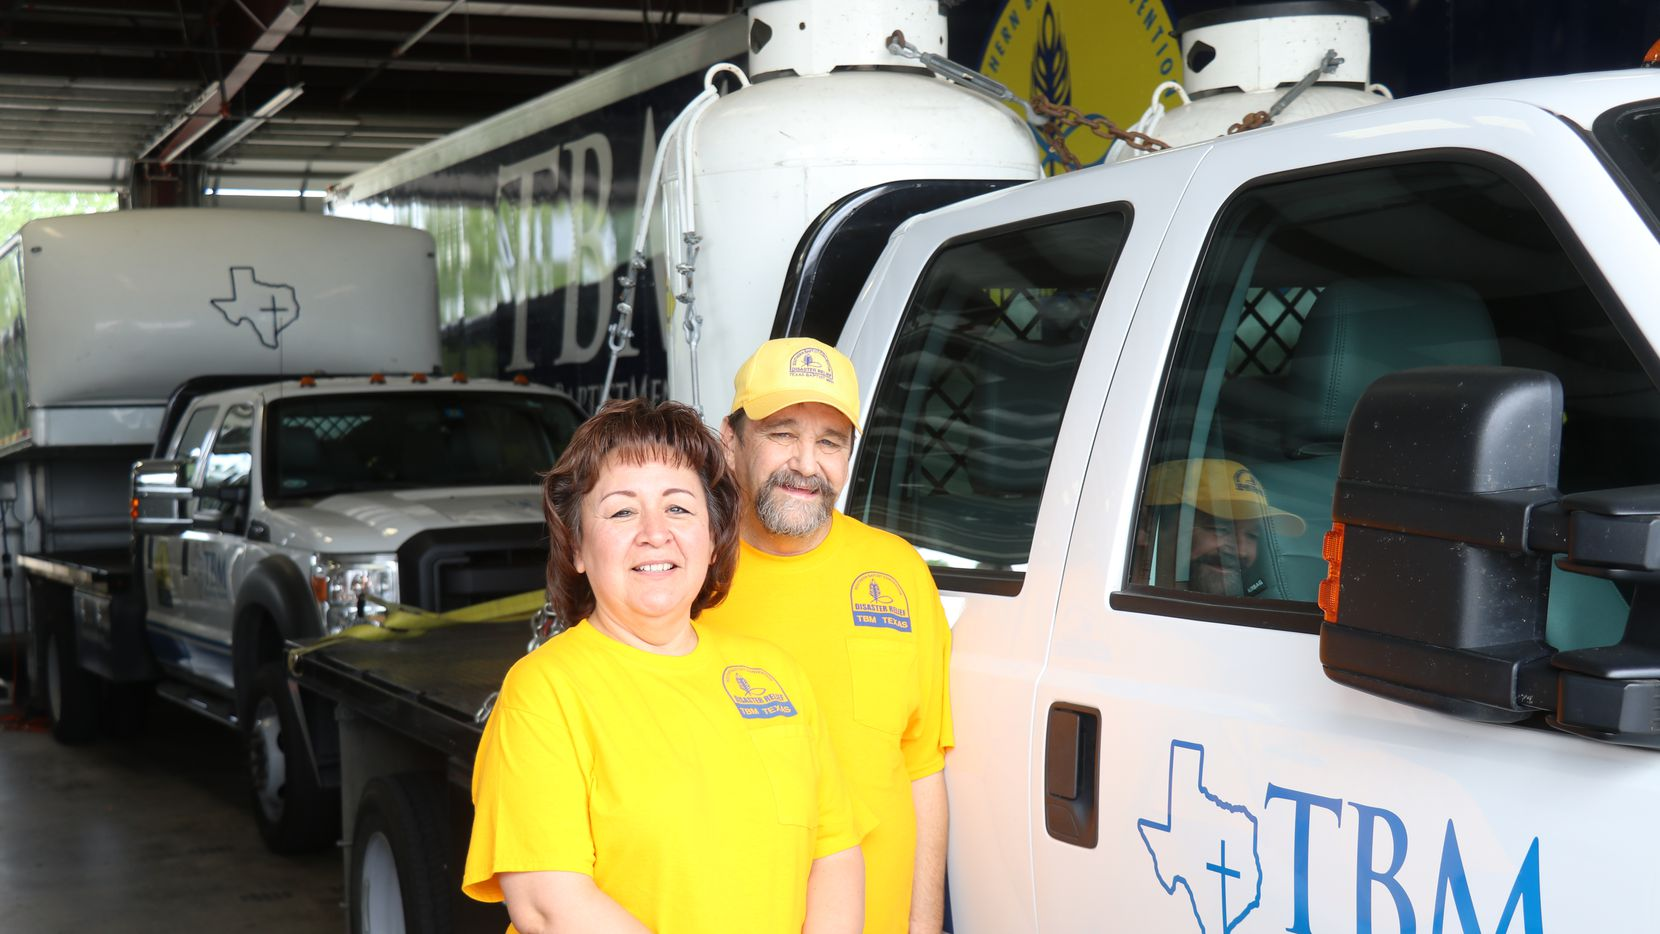 The Schiecks have more than a decade of experience when it comes to disaster relief. Russell started volunteering for the Texas Baptist Men in 2002; Rachel began helping for the organization in 2005.